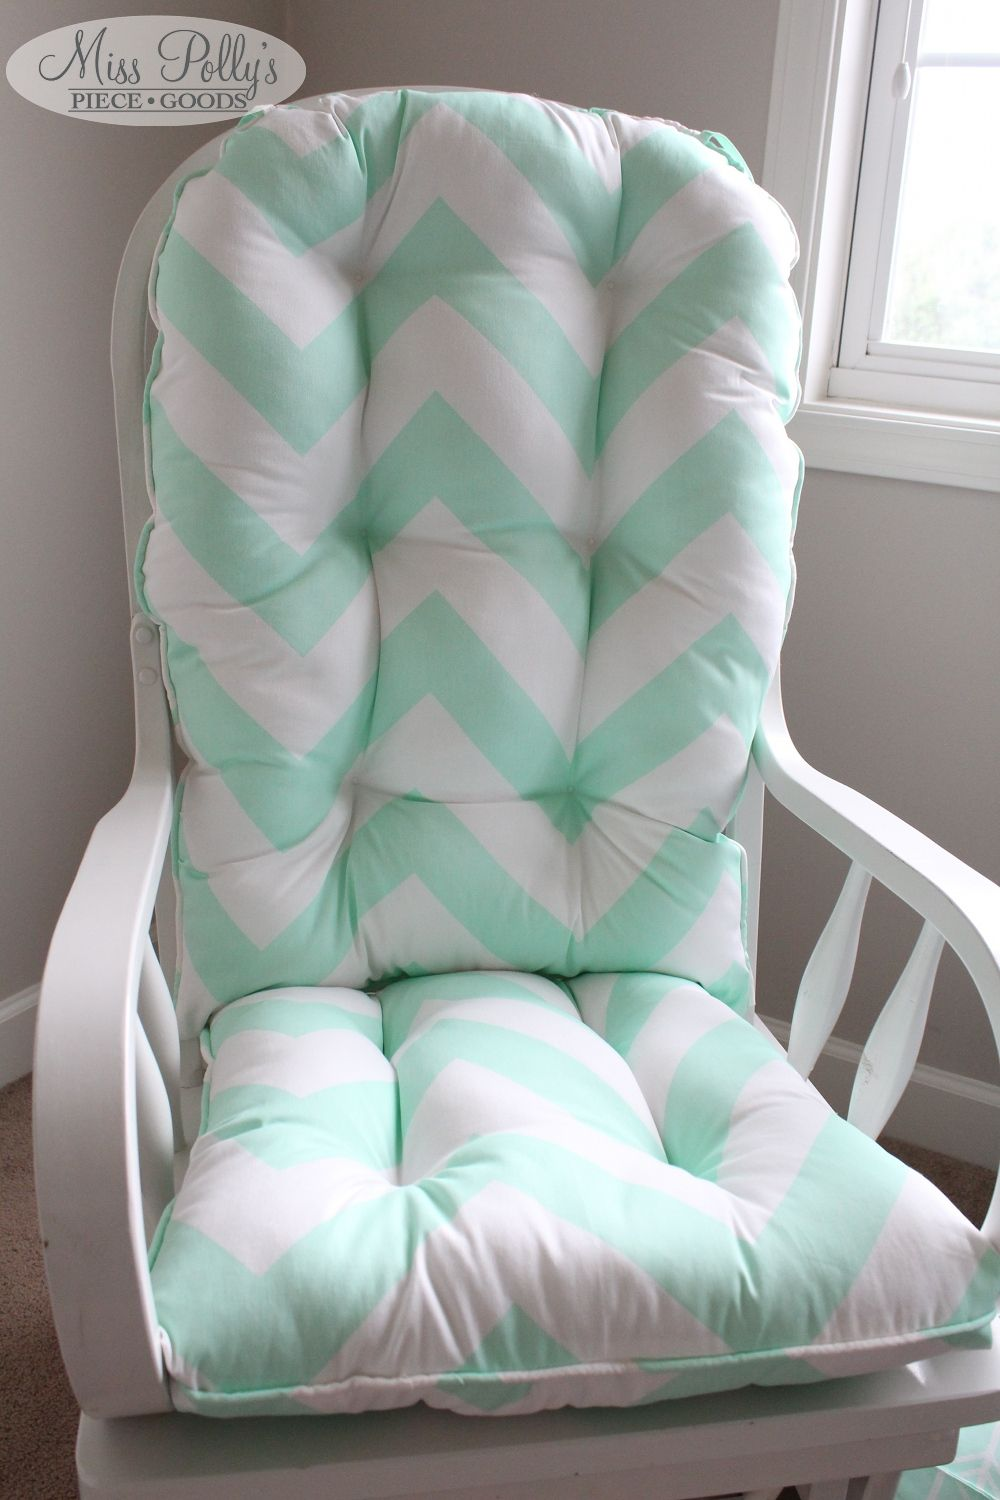 Nursery Rocking Chair Cushions Uk Baby High Tray Pin By Mommy Of 4 Brittany Henderson On Home Is Where The Heart Mint Chevron Glider Misspollyspiecegoods Https Www Etsy